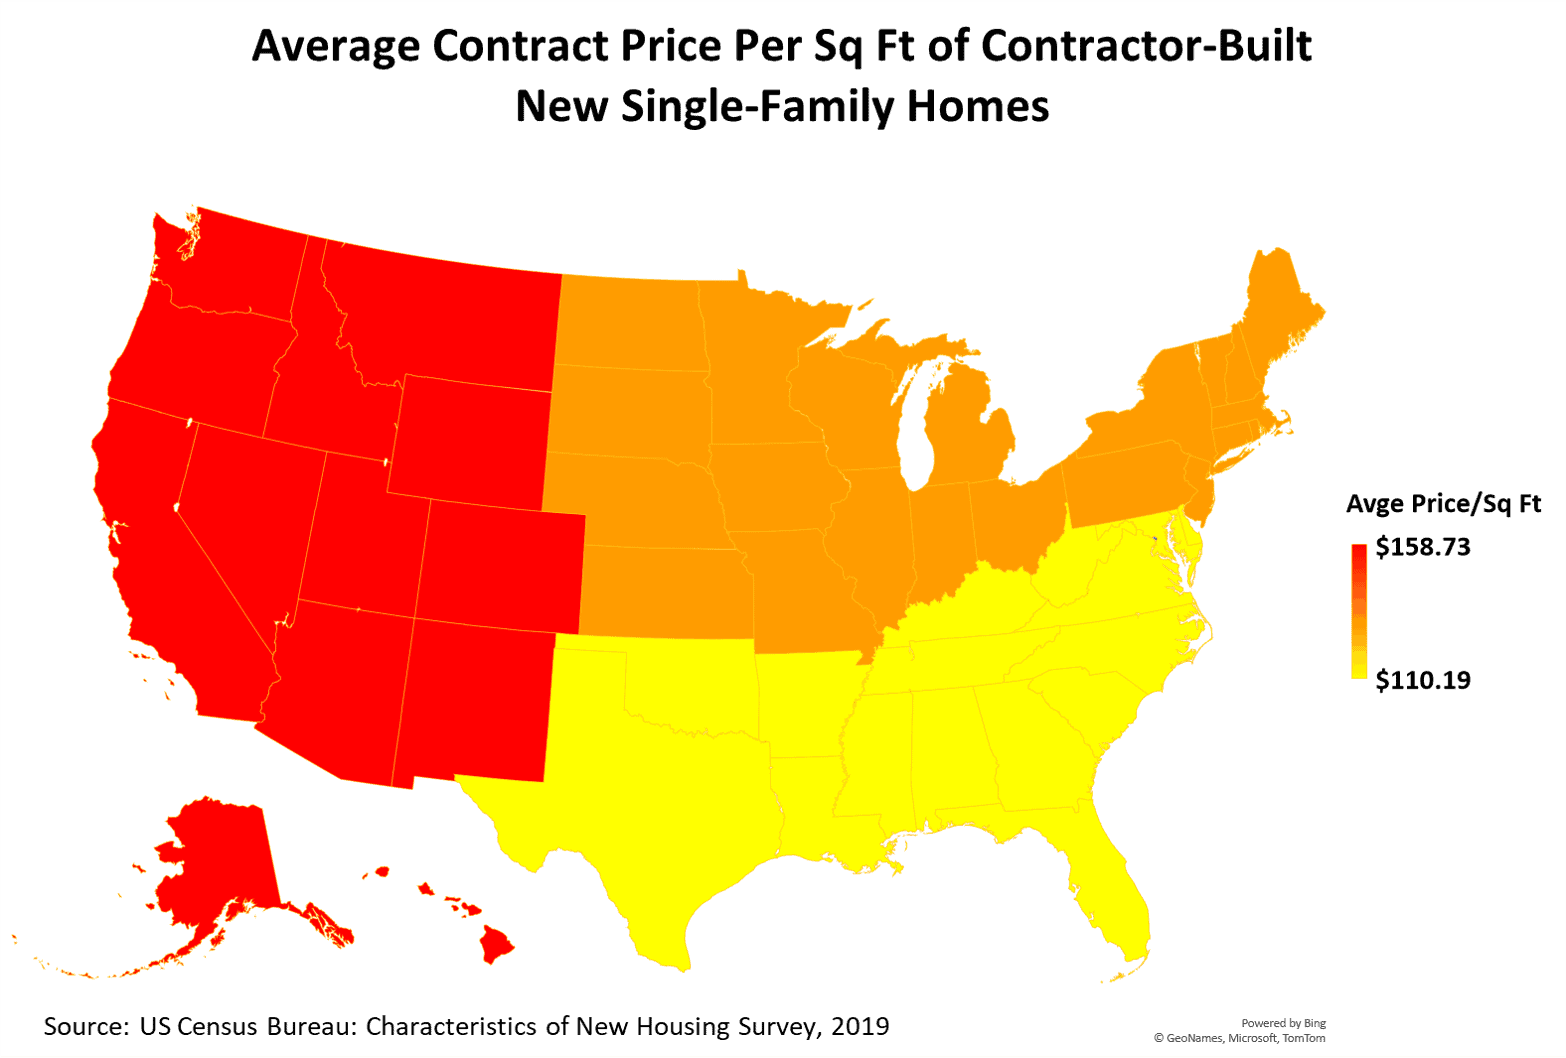 US Map of Average Contract Price Per Square Foot of Contractor-Built New Single-Family Homes by Region